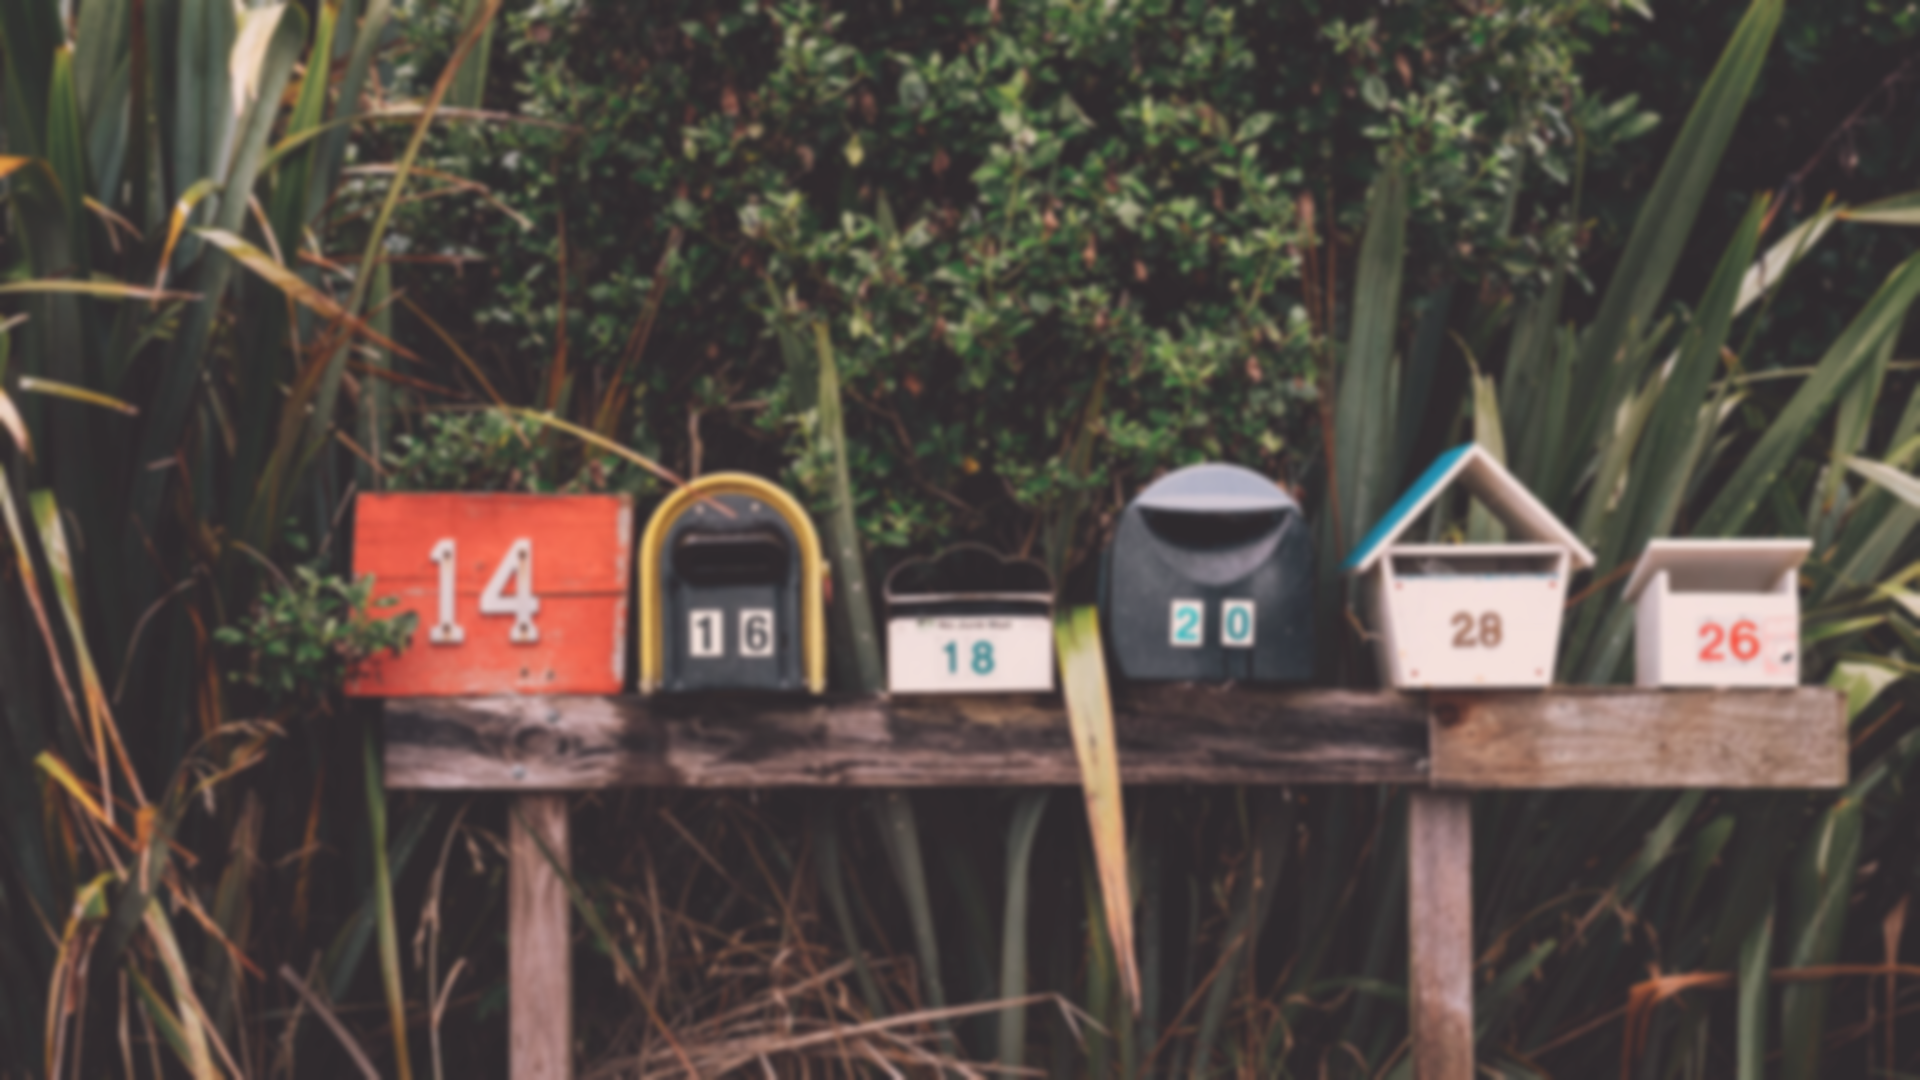 a row of different mailboxes with different numbers on them